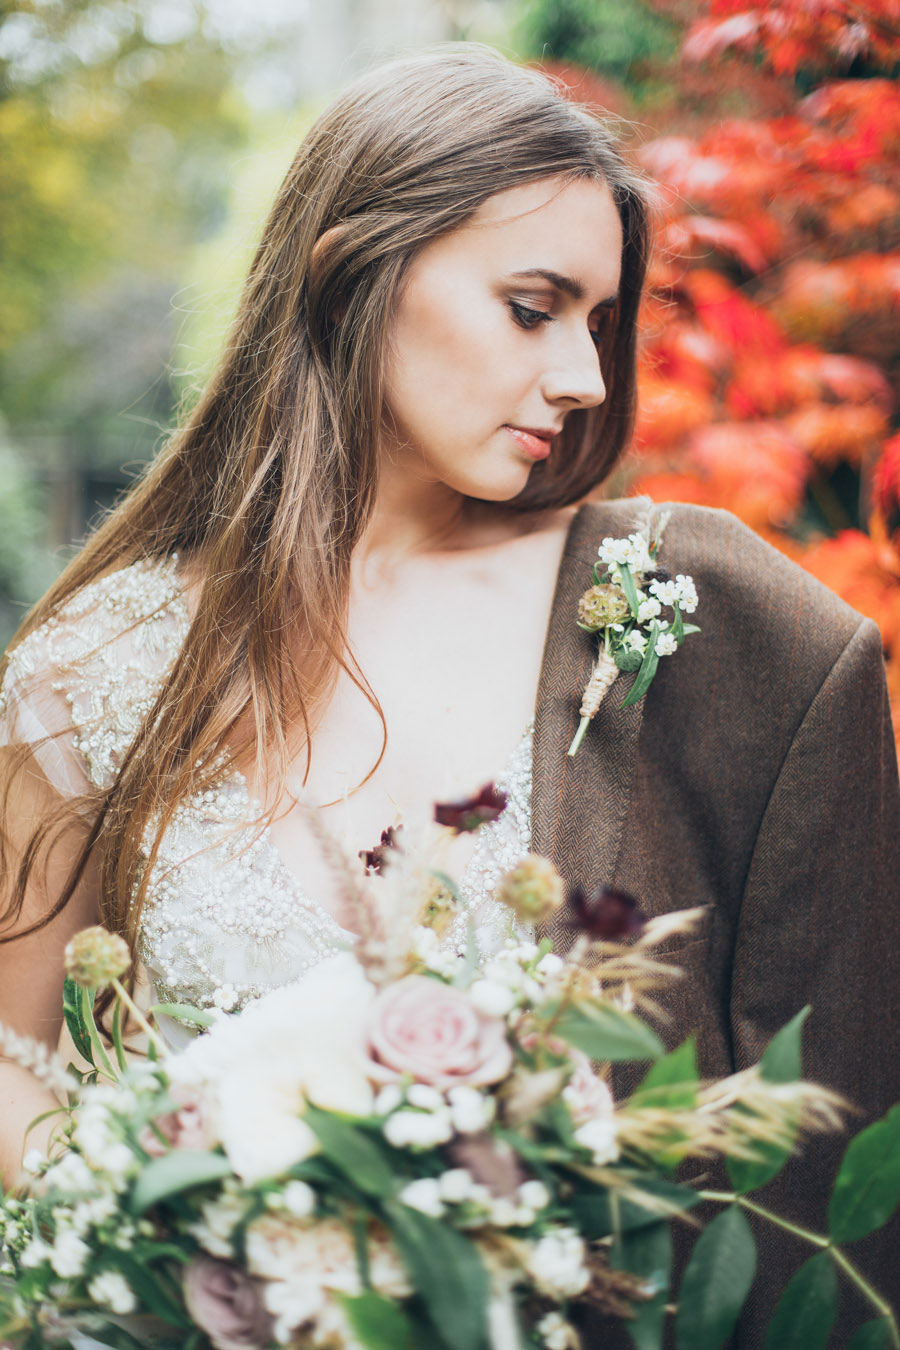 Enchanted in London! Greenery Inspired Bridal Editorial With Stained Gold & Soft Muted Hues